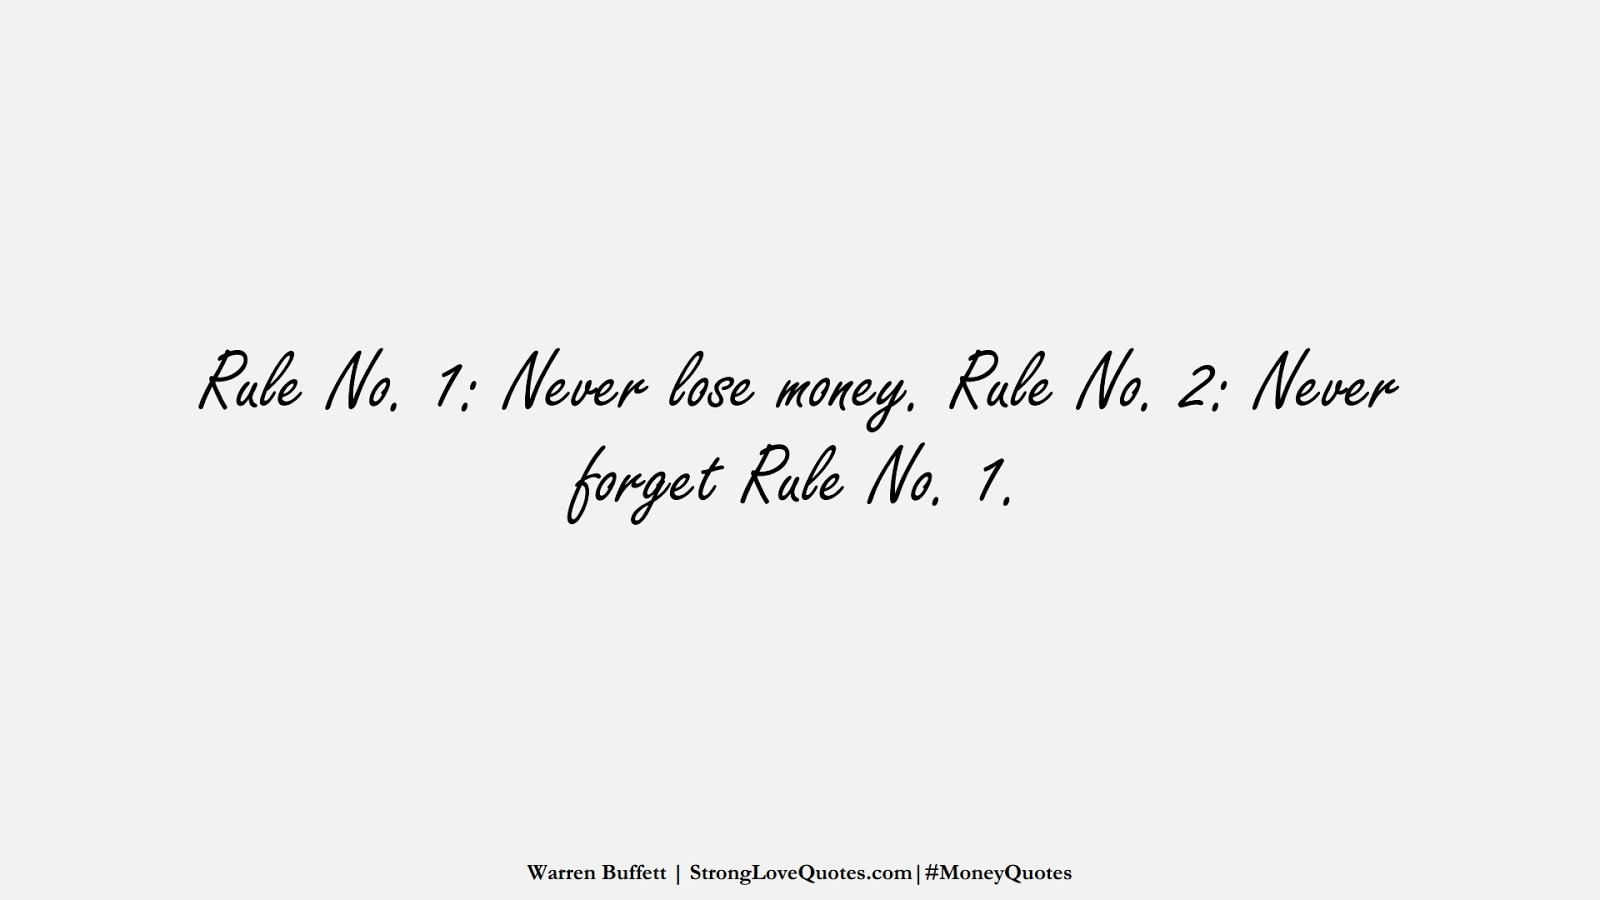 Rule No. 1: Never lose money. Rule No. 2: Never forget Rule No. 1. (Warren Buffett);  #MoneyQuotes